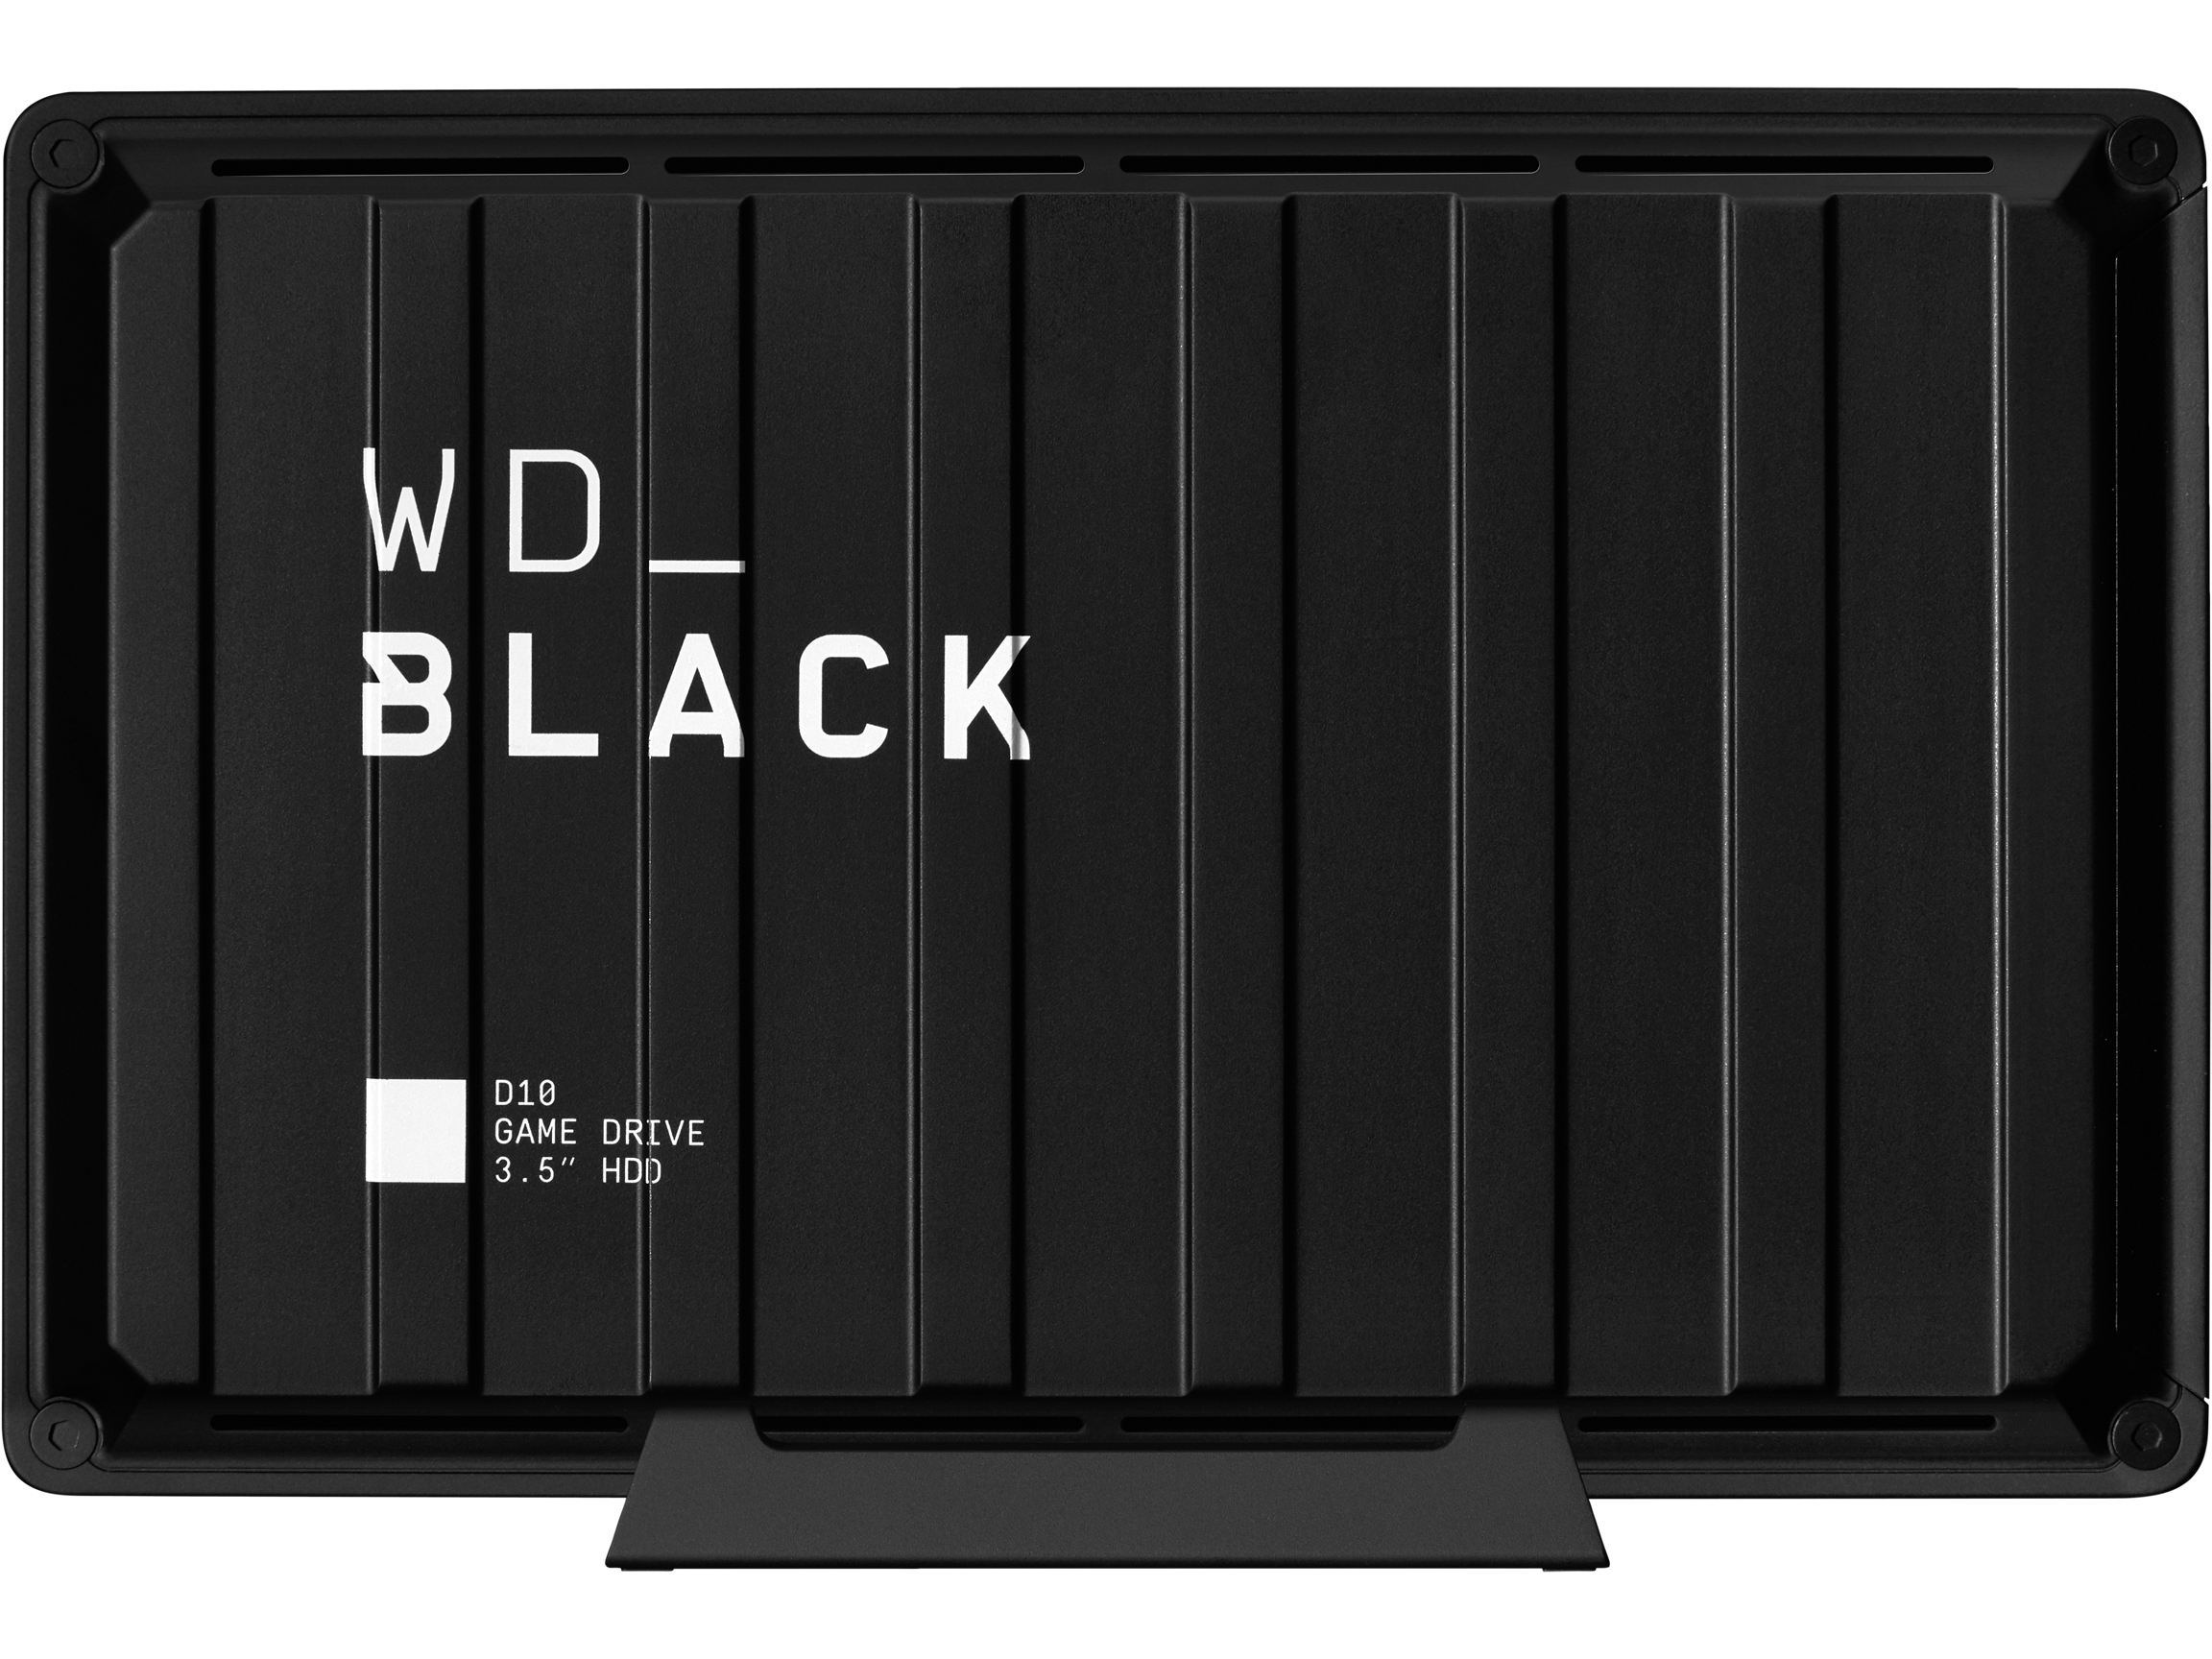 WD Black 8TB D10 Game Drive Portable External Hard Drive for PS4 Xbox One PC Mac USB 3.2 WDBA3P0080HBK-NESN